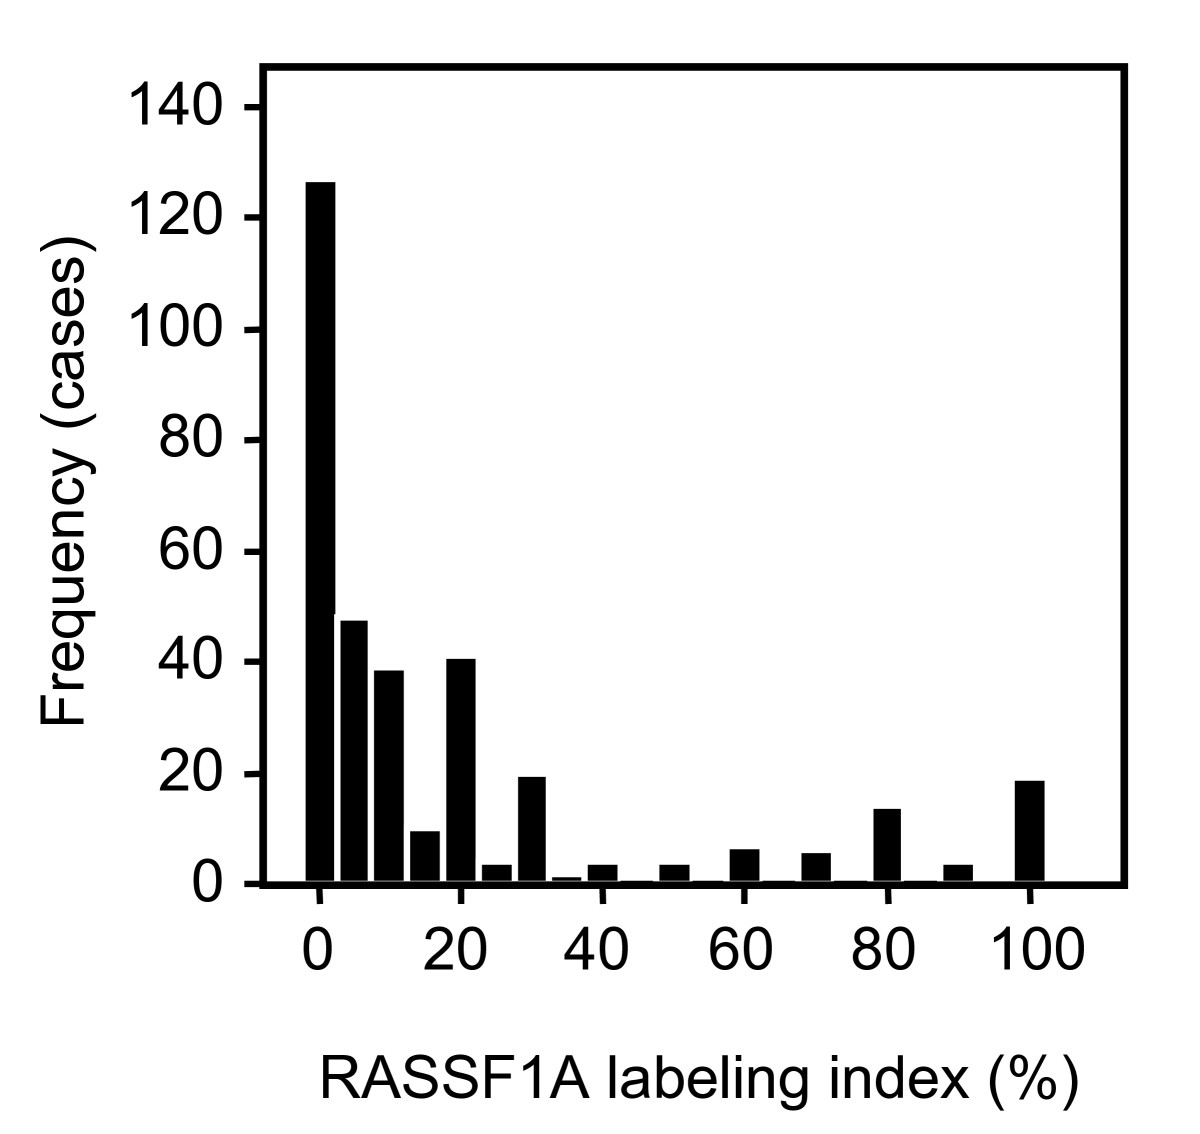 http://static-content.springer.com/image/art%3A10.1186%2F1471-2490-8-12/MediaObjects/12894_2008_Article_117_Fig2_HTML.jpg